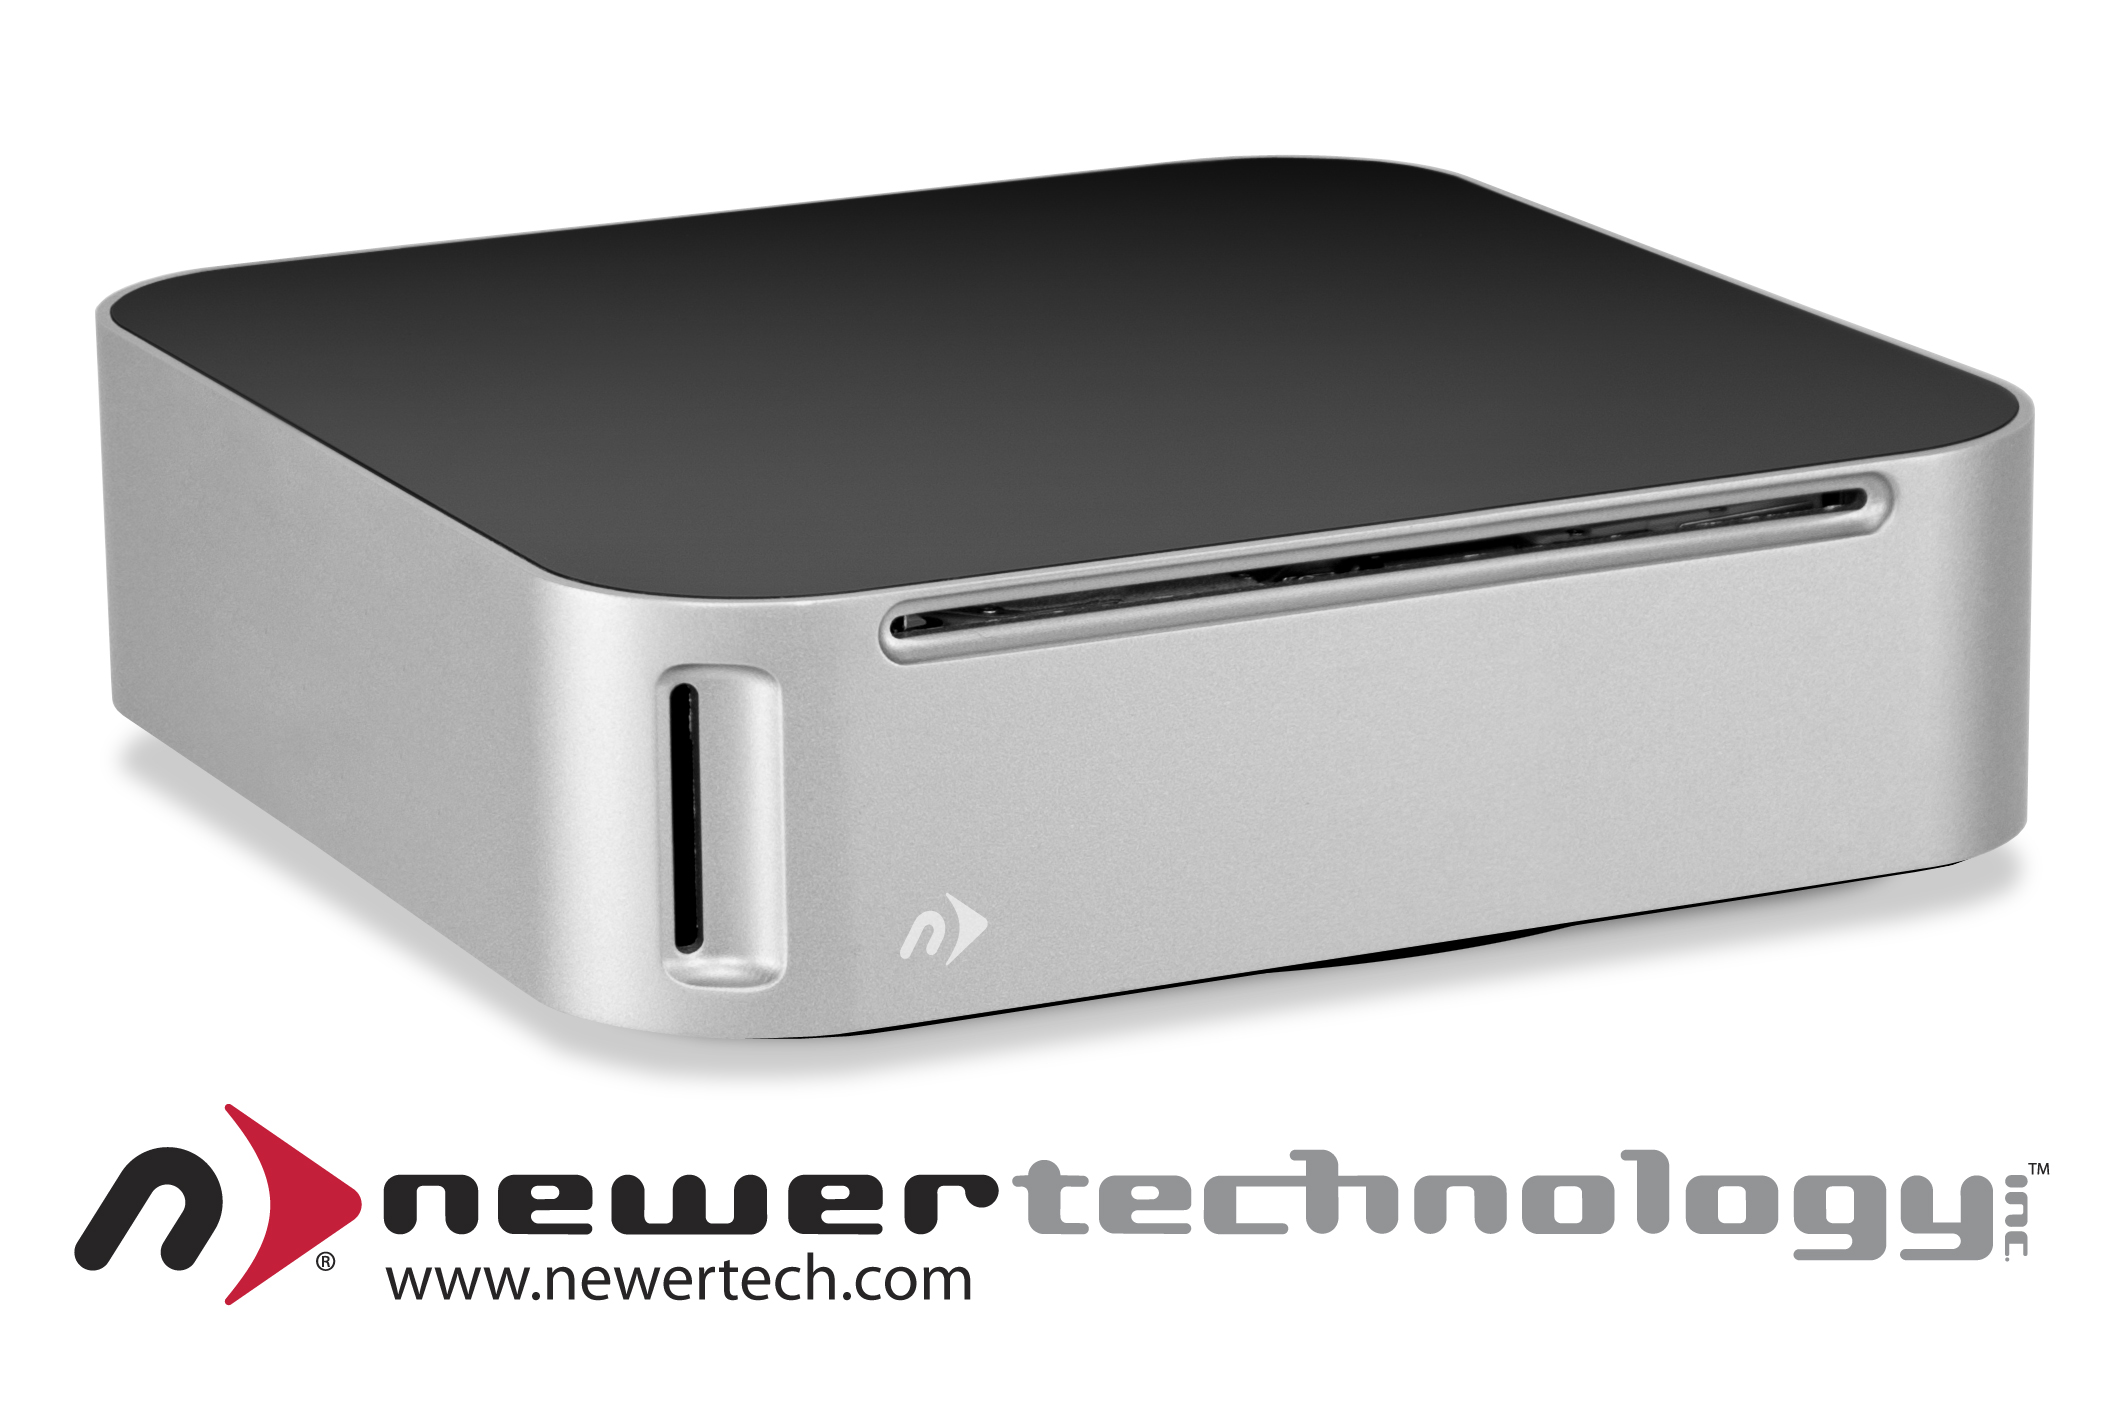 NewerTech crams an optical drive in the miniStack Max, combines SD ...